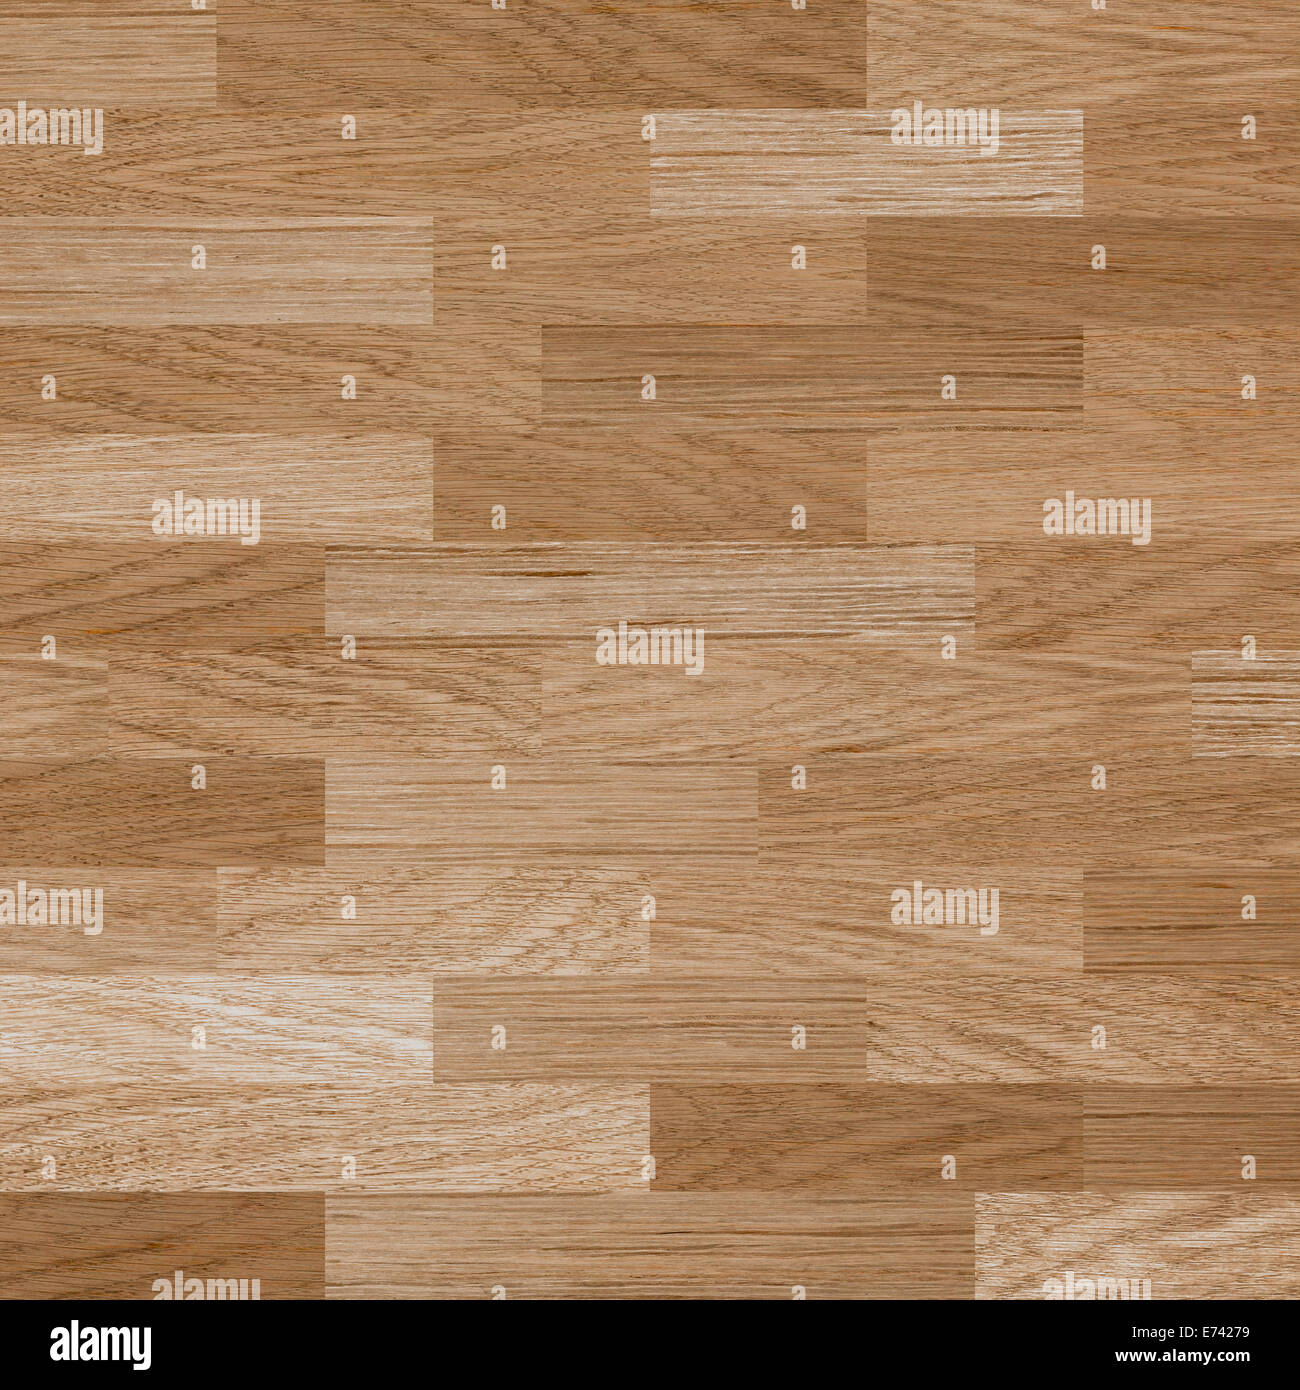 parquet laminate wooden texture background - Stock Image